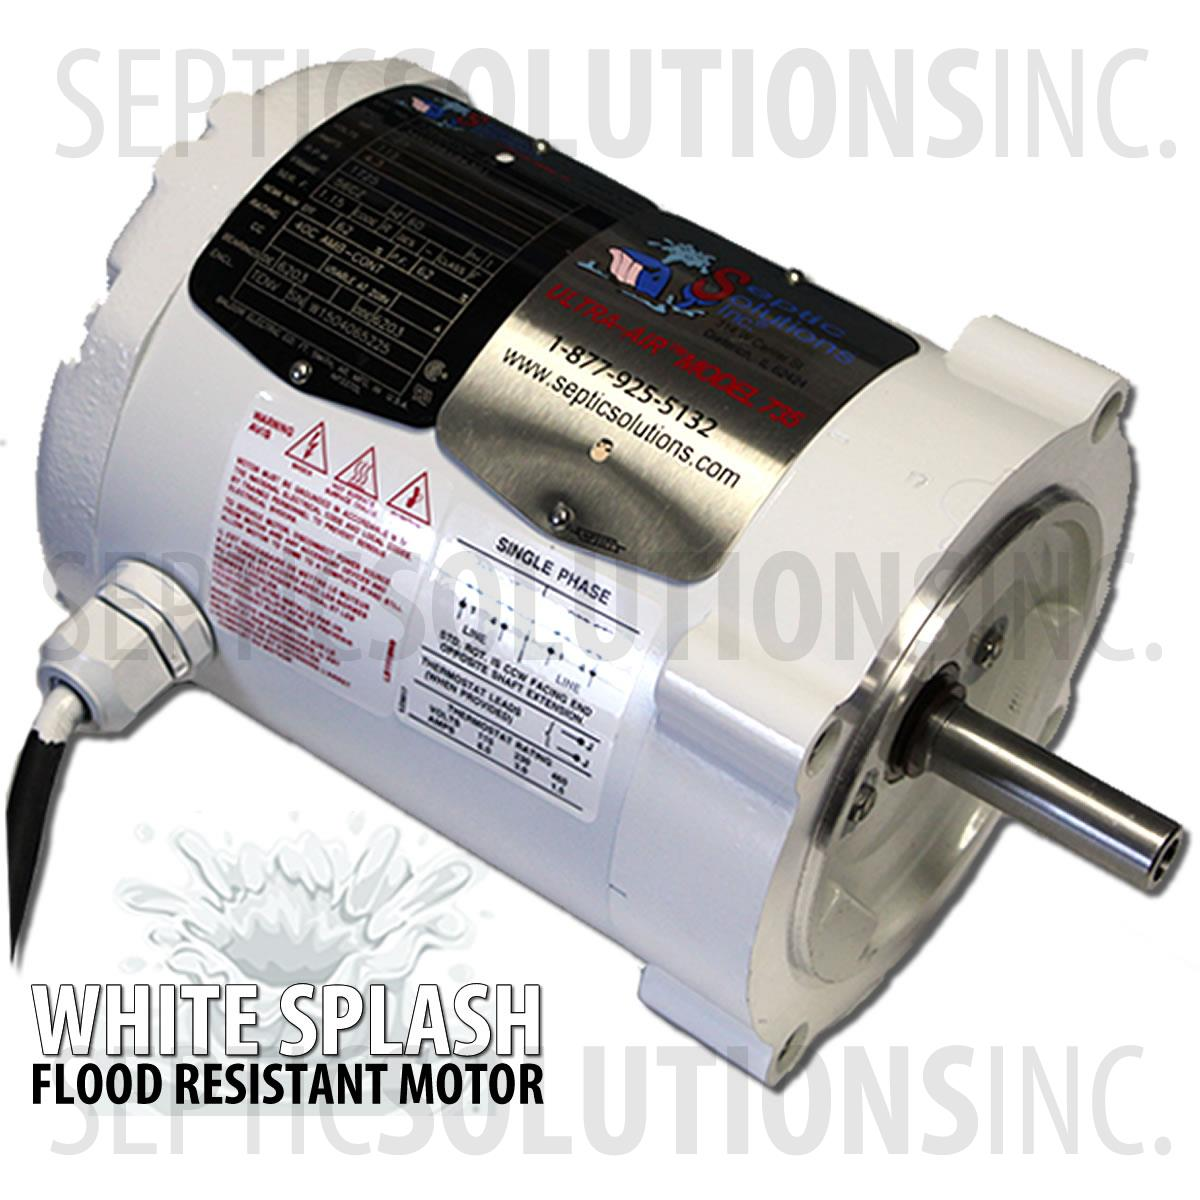 ultra air model 735 white splash flood resistant